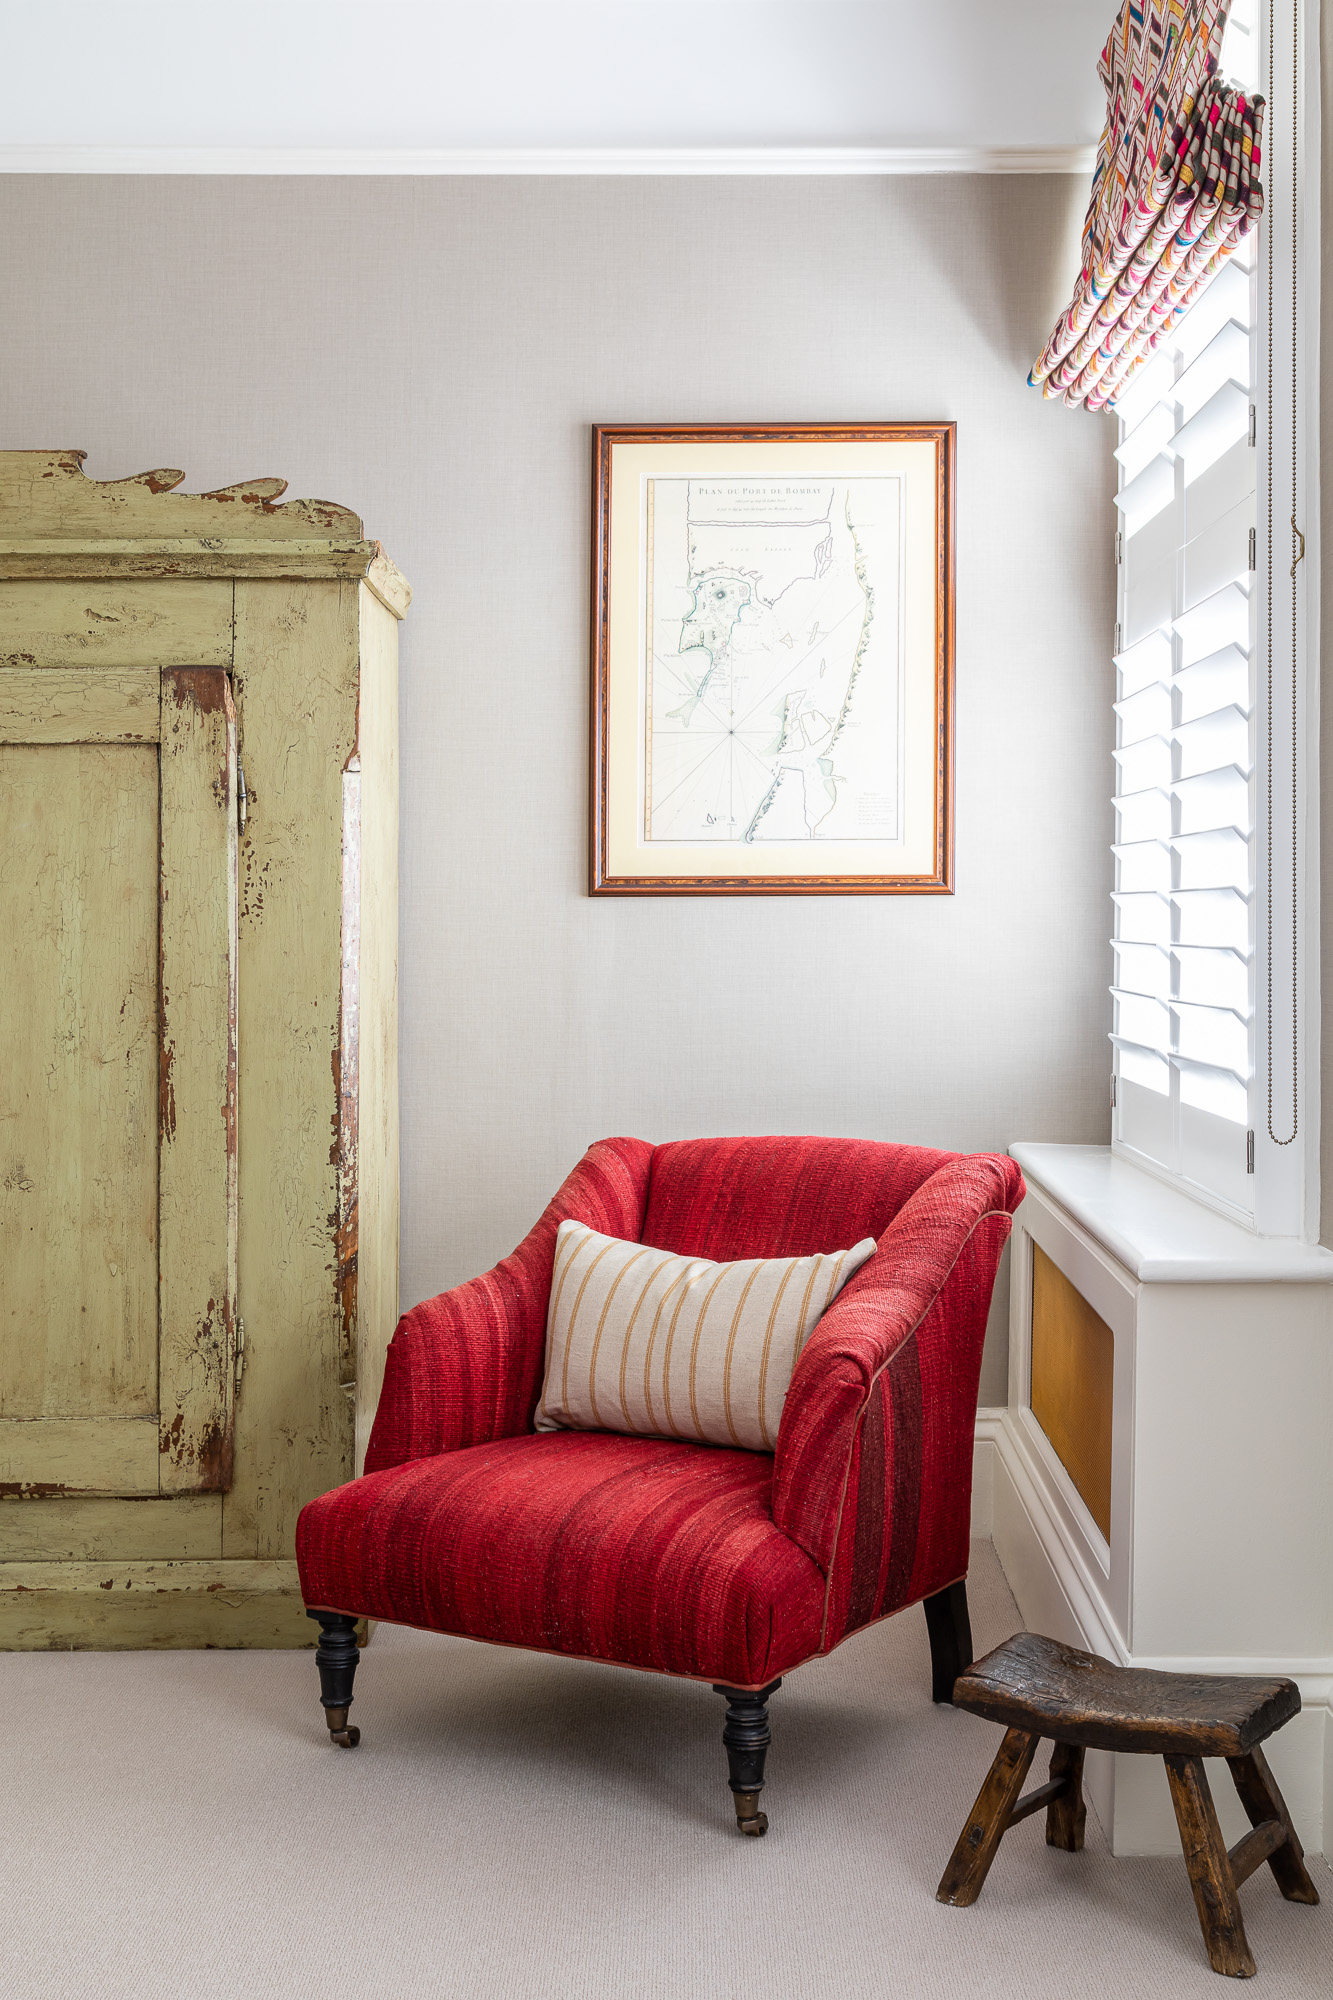 jonathan bond, red armchair by bedroom window, clapham, london